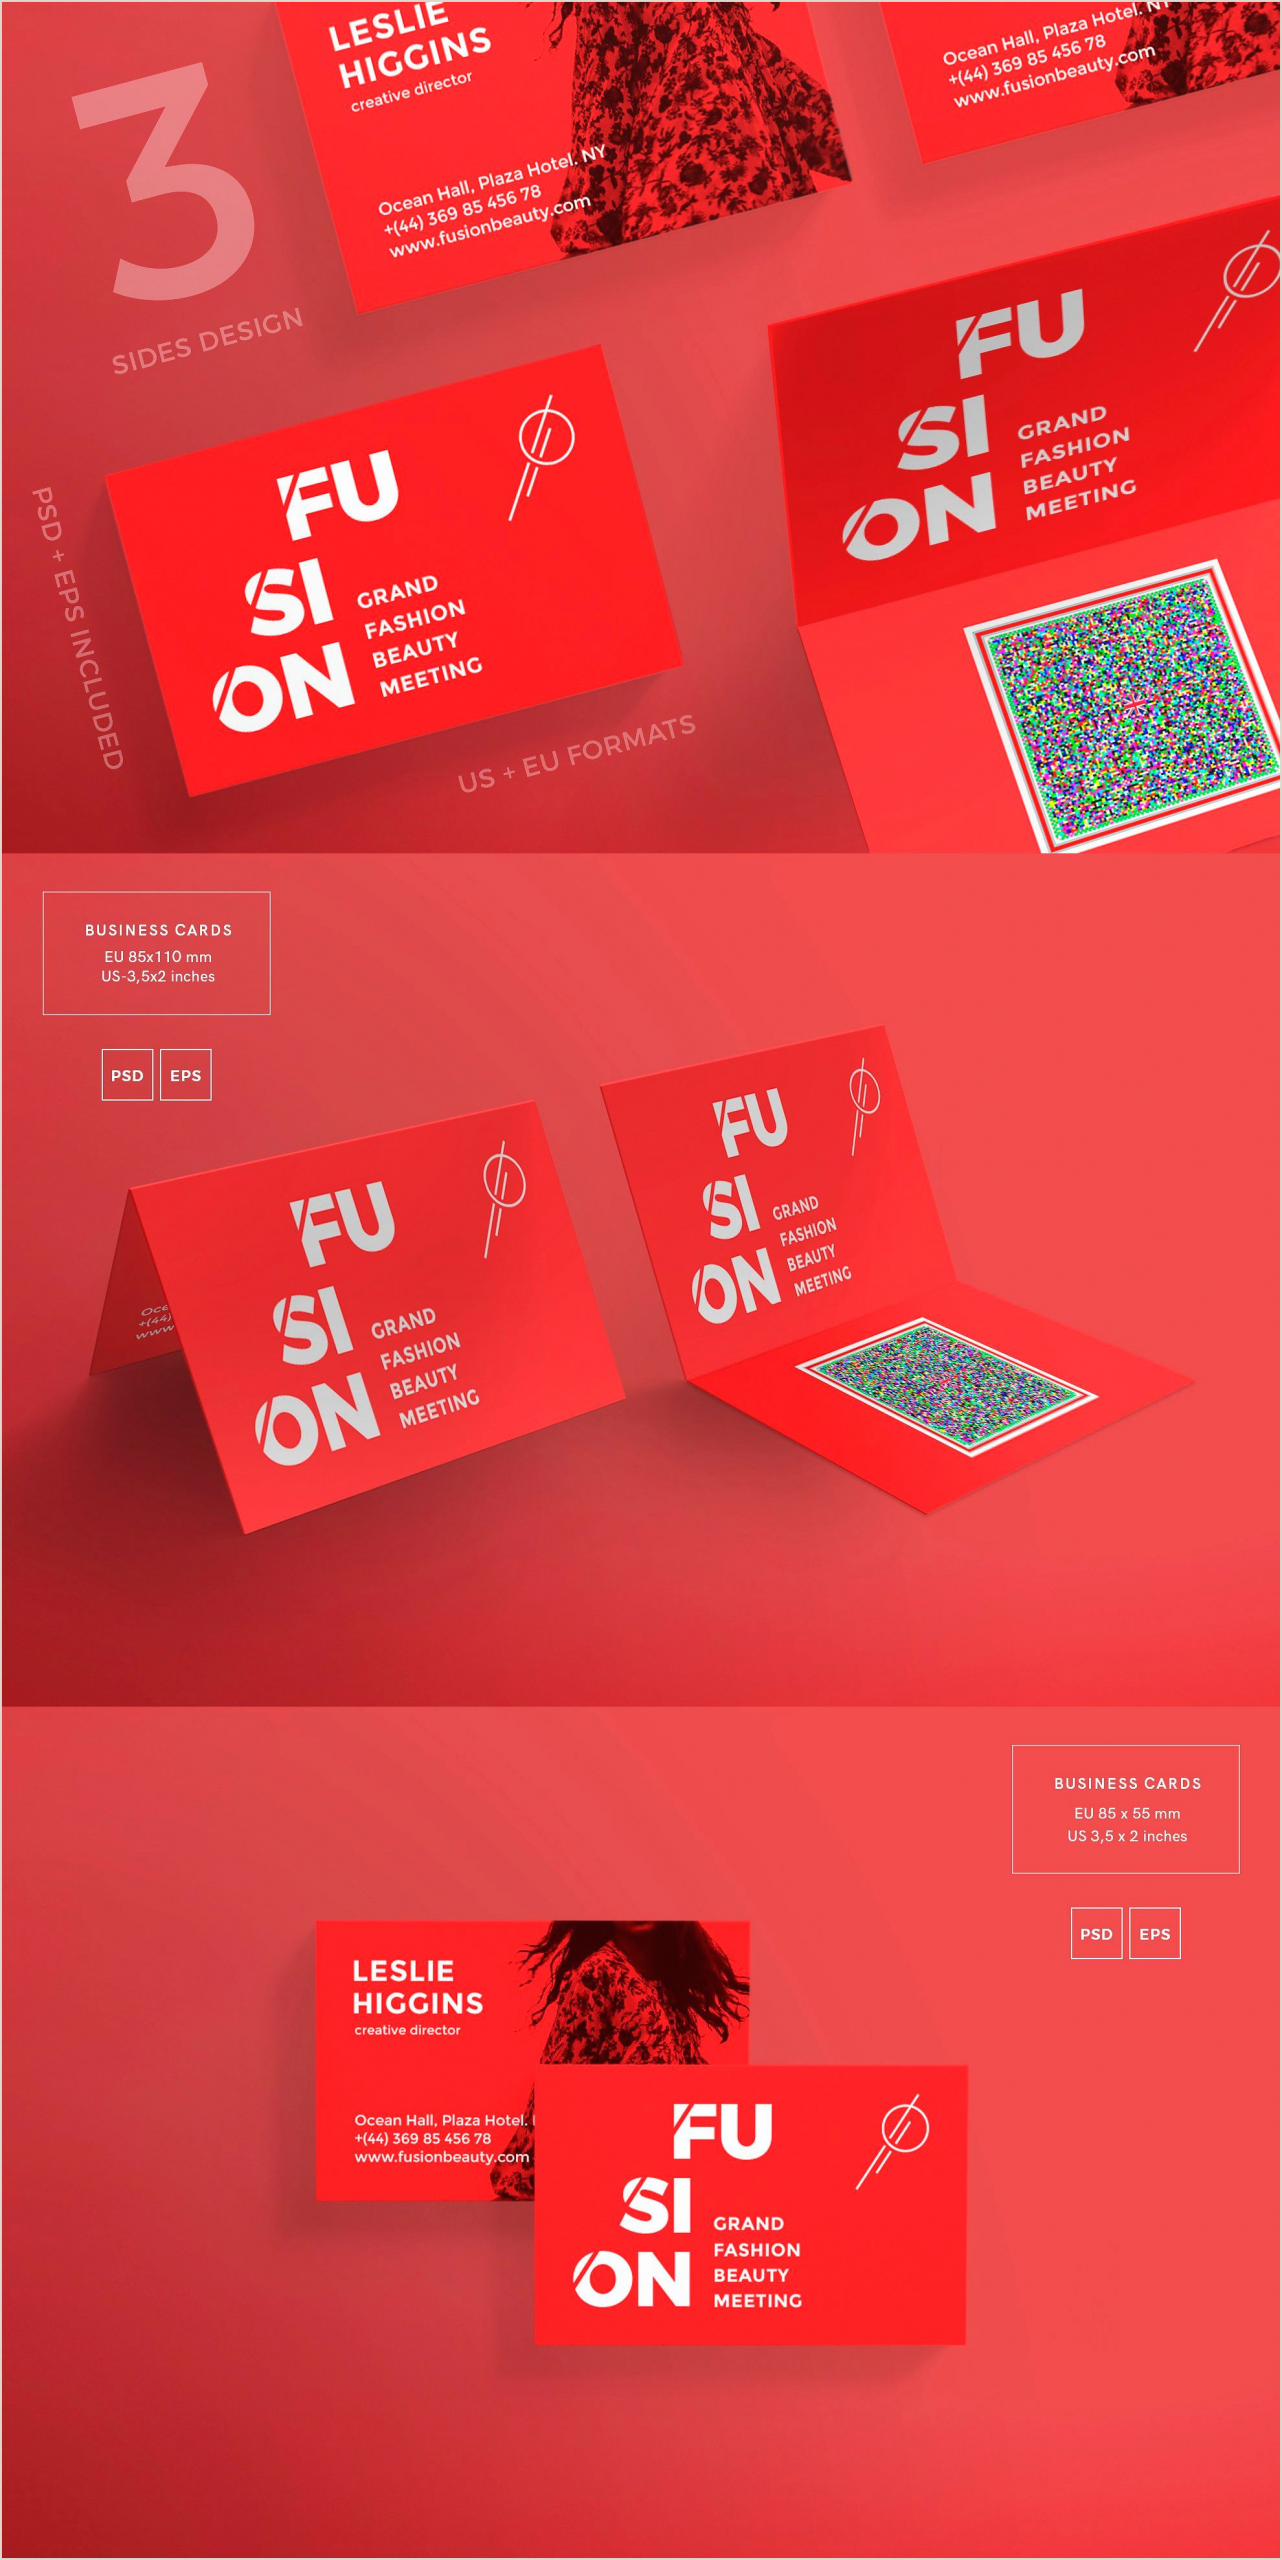 Best Image Size For Business Cards Business Cards Fusion